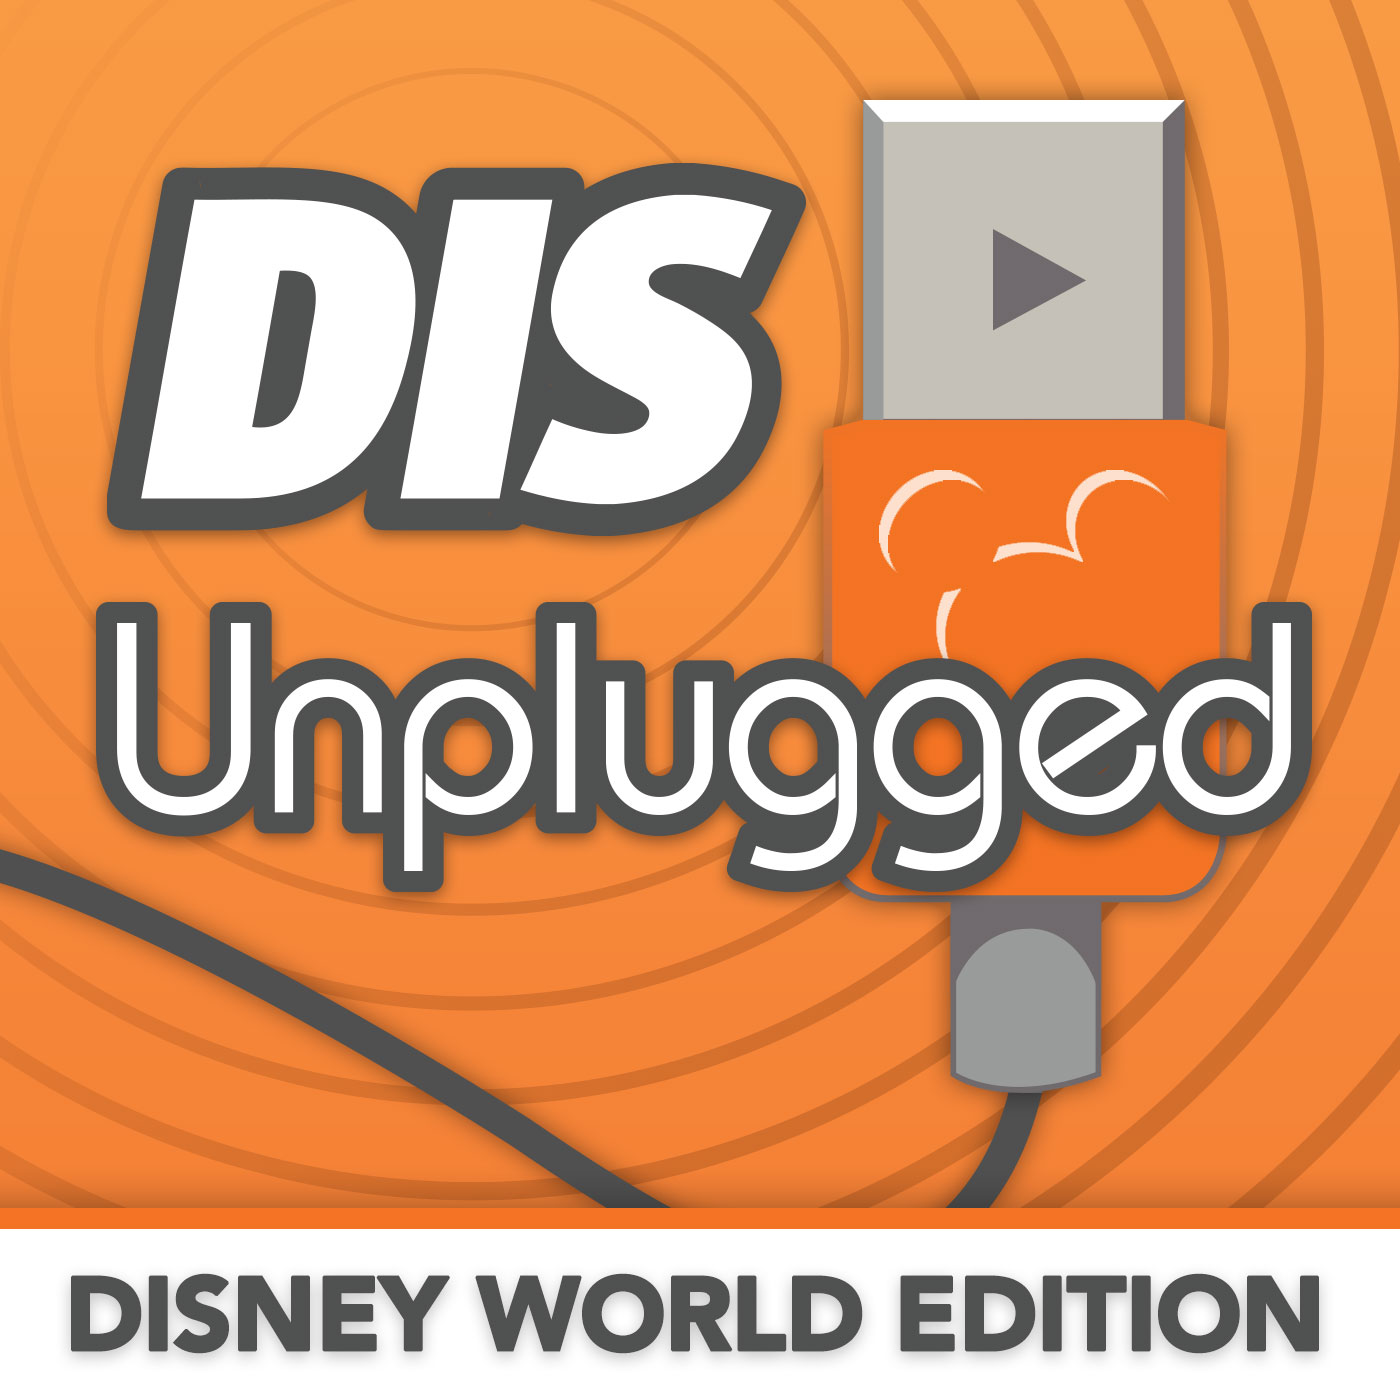 DIS Unplugged: Disney World Edition